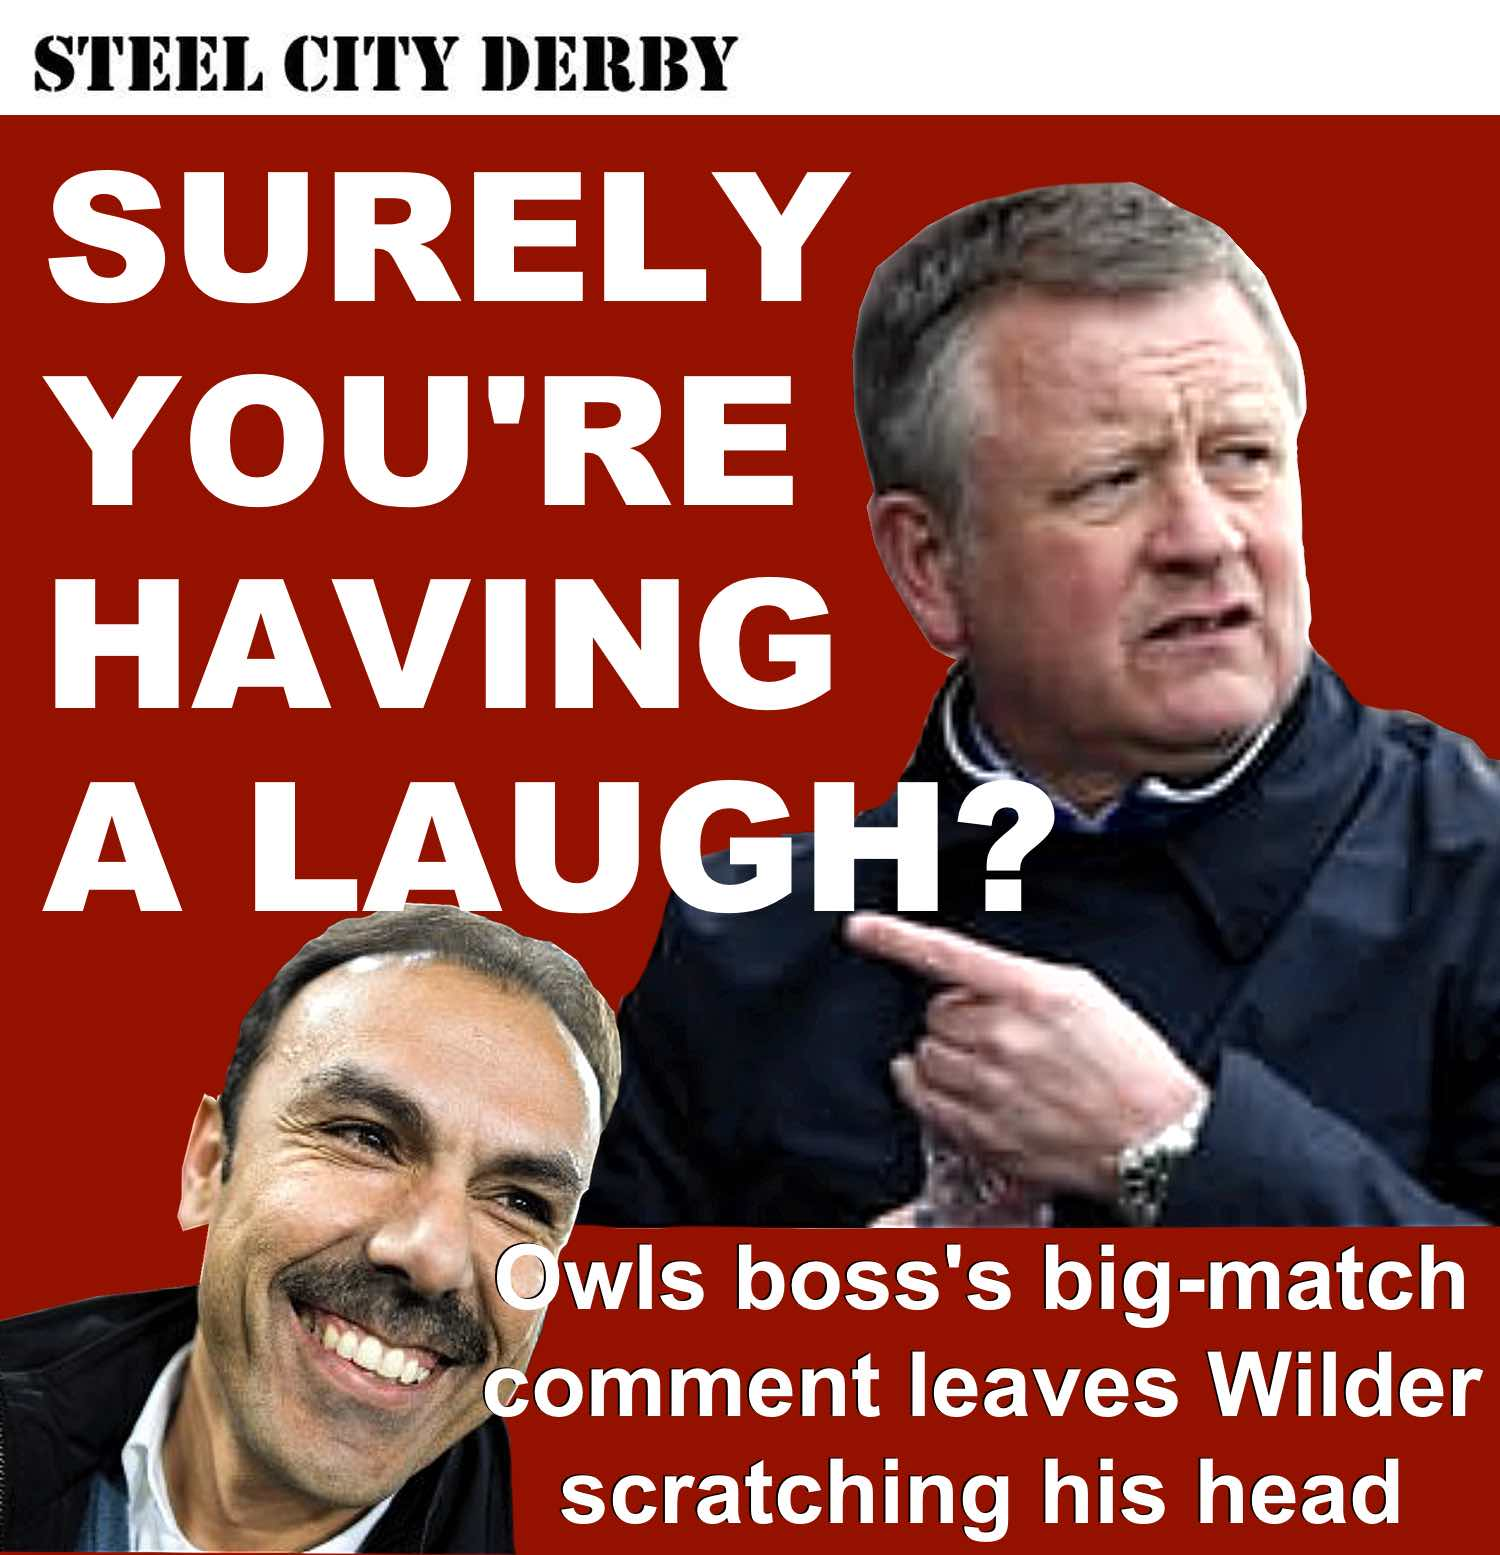 Sheffield United boss Chris Wilder left scratching his head at new Owls boss's Steel City derby comment